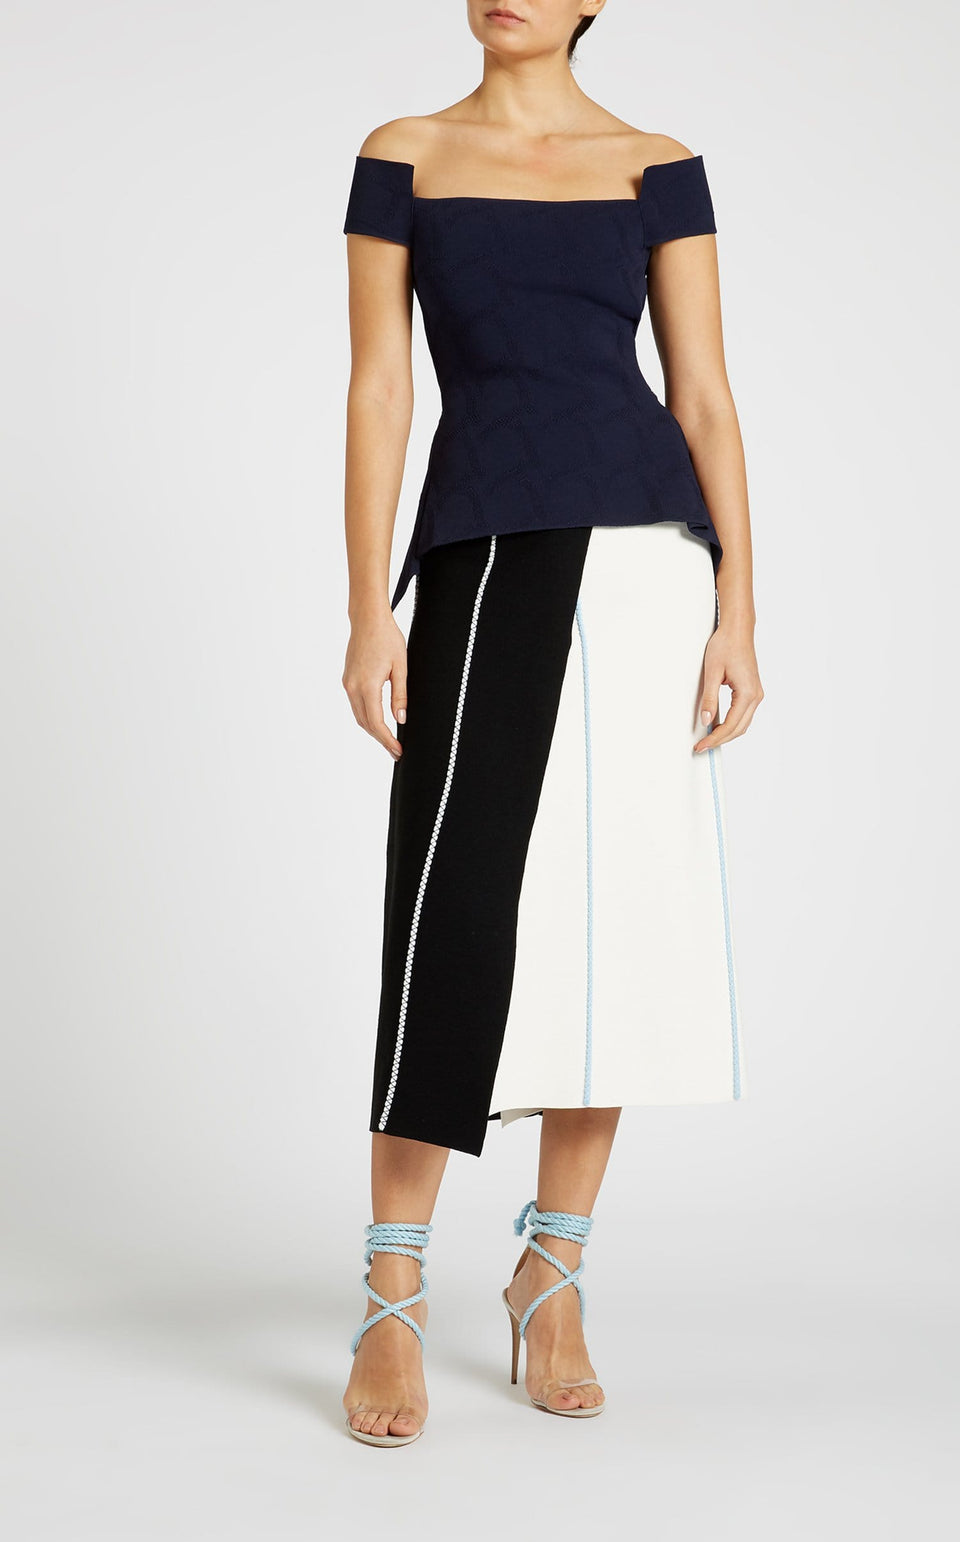 Glen Skirt In Black/White/Ice Blue from Roland Mouret